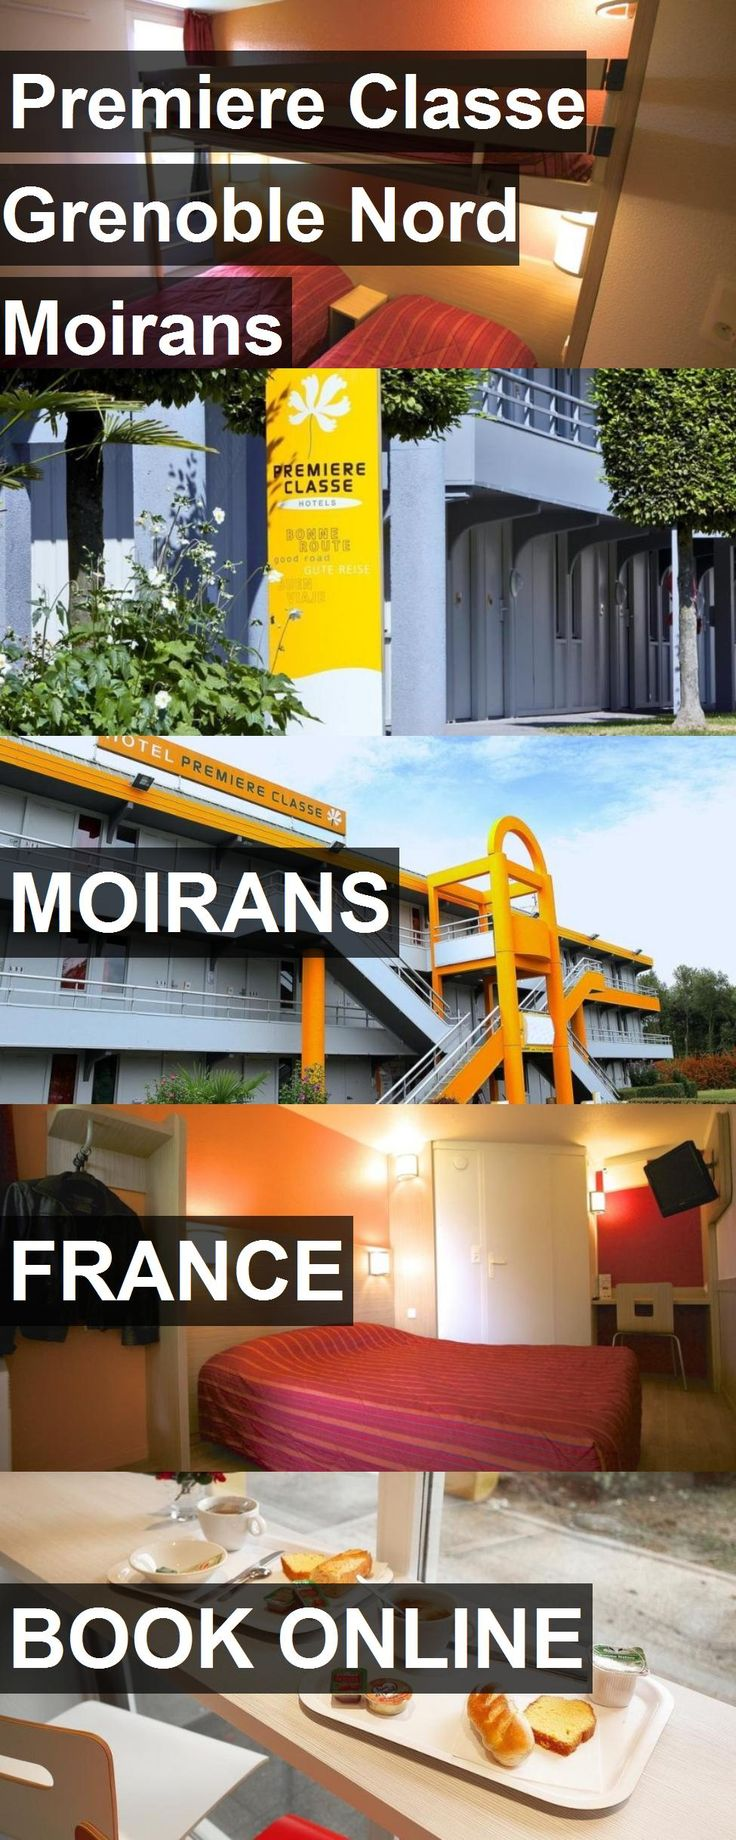 Hotel Premiere Classe Grenoble Nord Moirans in Moirans, France. For more information, photos, reviews and best prices please follow the link. #France #Moirans #PremiereClasseGrenobleNordMoirans #hotel #travel #vacation